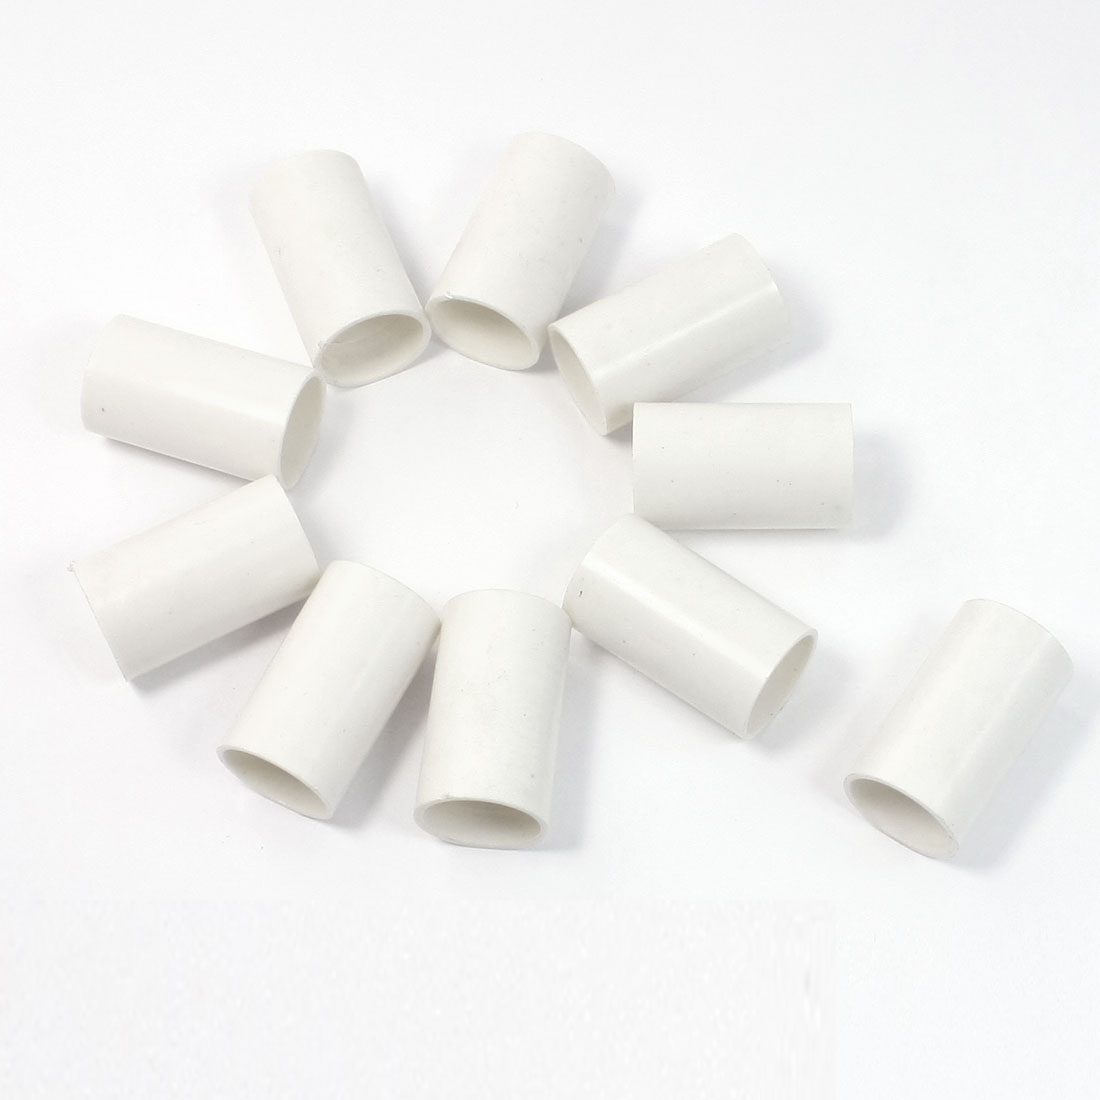 10 Pcs 20mm Inner Diameter Straight PVC Pipe Connectors Fittings White